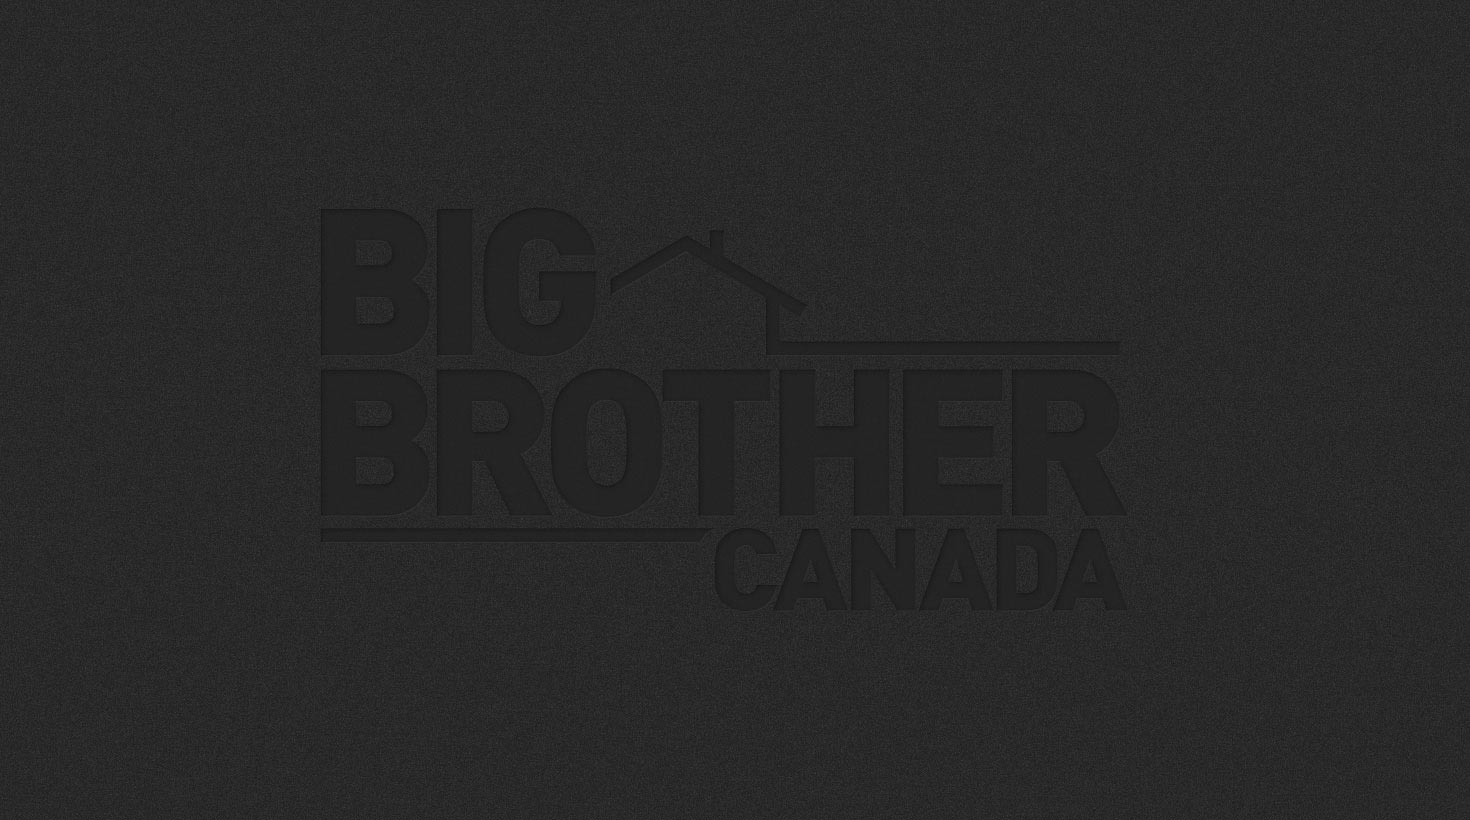 BBCAN9 Finalists, Breydon White & Tera Gillen-Petrozzi Reflect on Inspiring Others